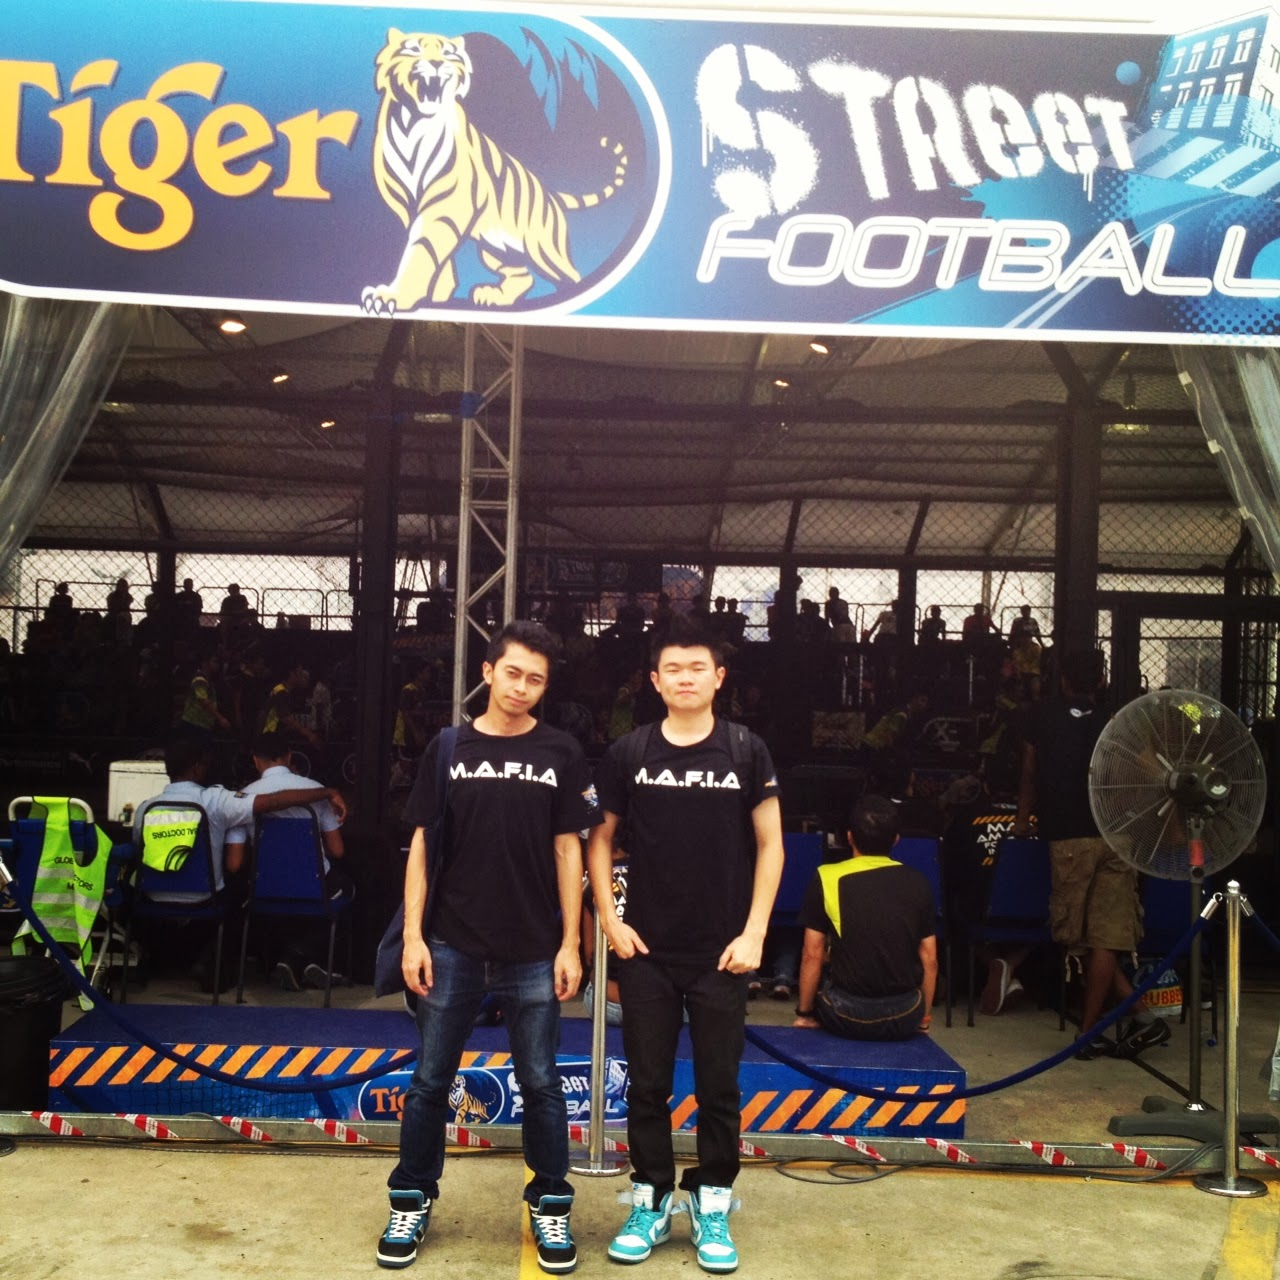 TIGER STREET FOOTBALL YOYO TEAM 1 UTAMA